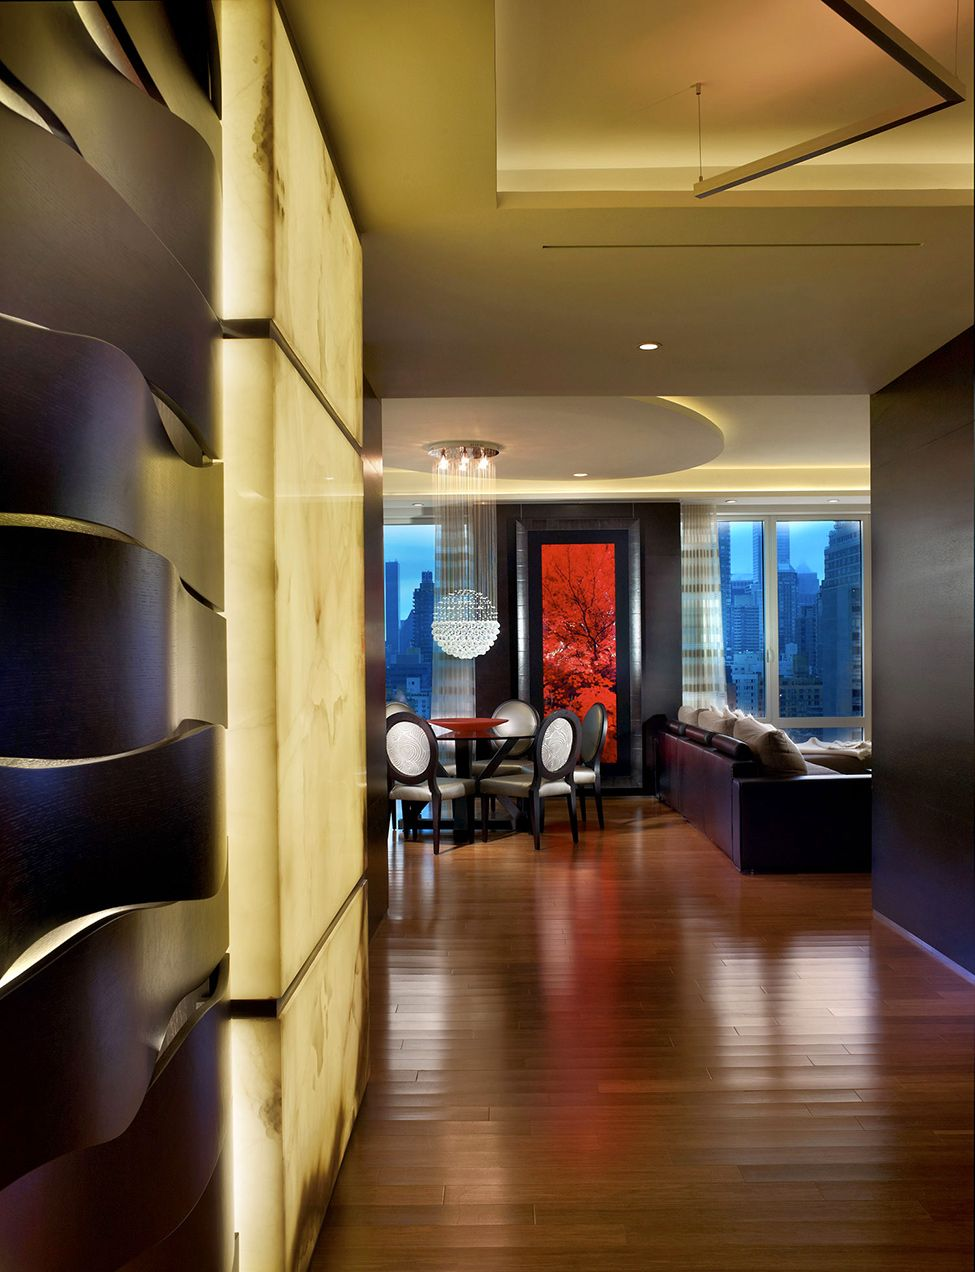 Chic interiors by pepe calderin design in new york penthouse